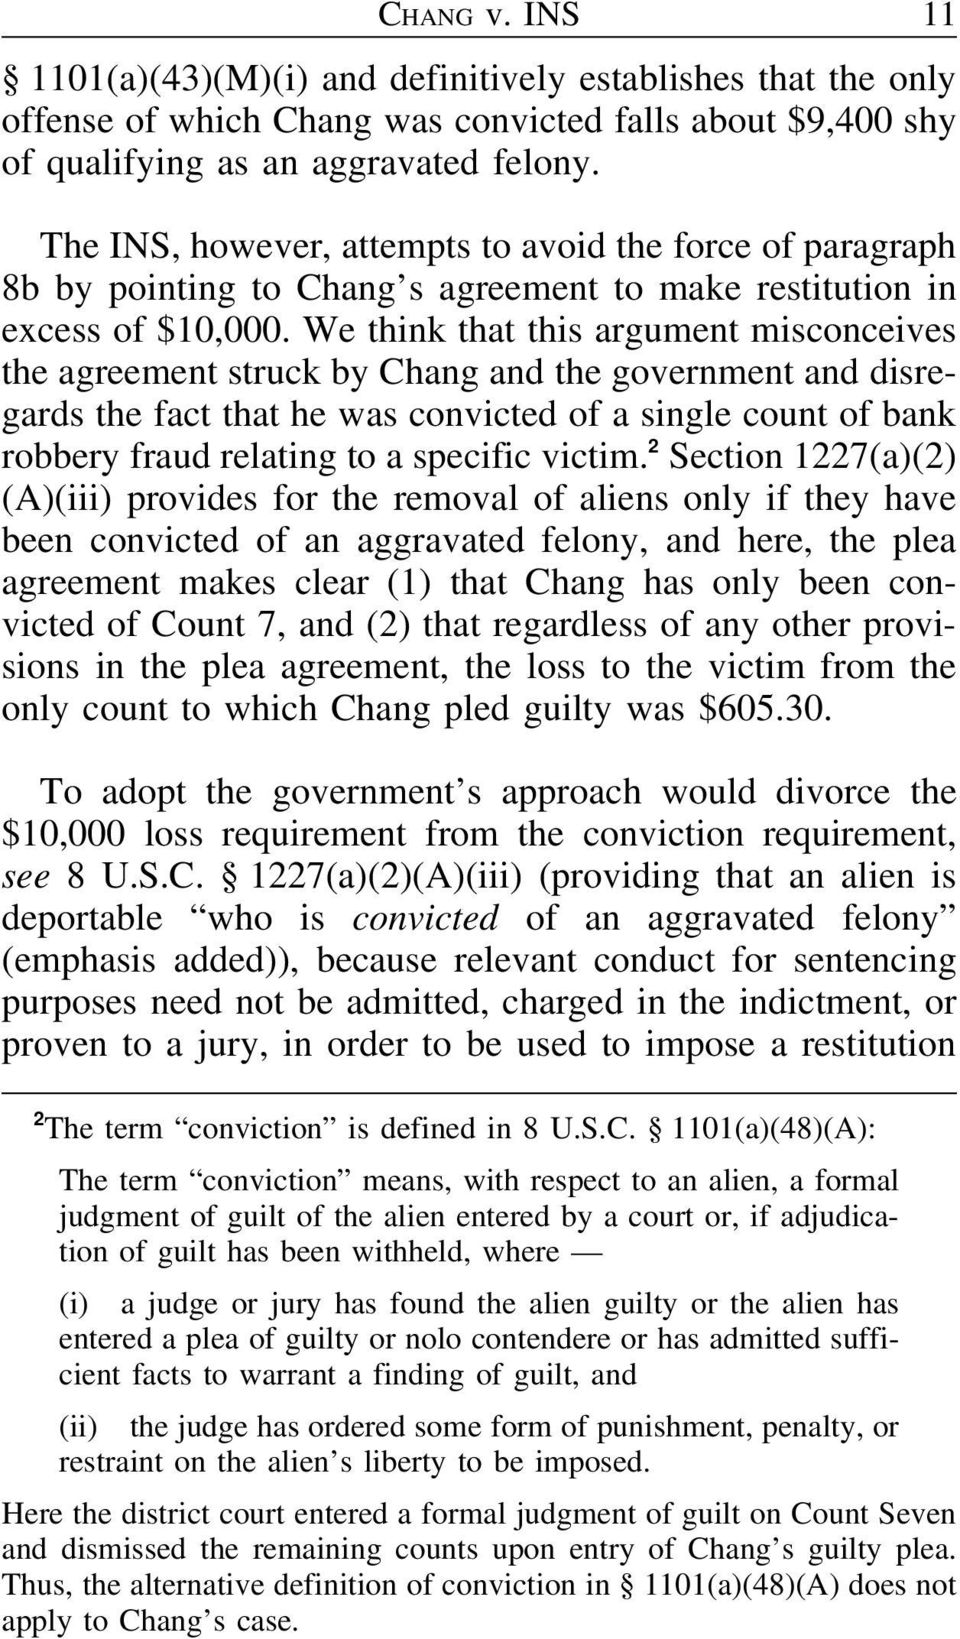 We think that this argument misconceives the agreement struck by Chang and the government and disregards the fact that he was convicted of a single count of bank robbery fraud relating to a specific